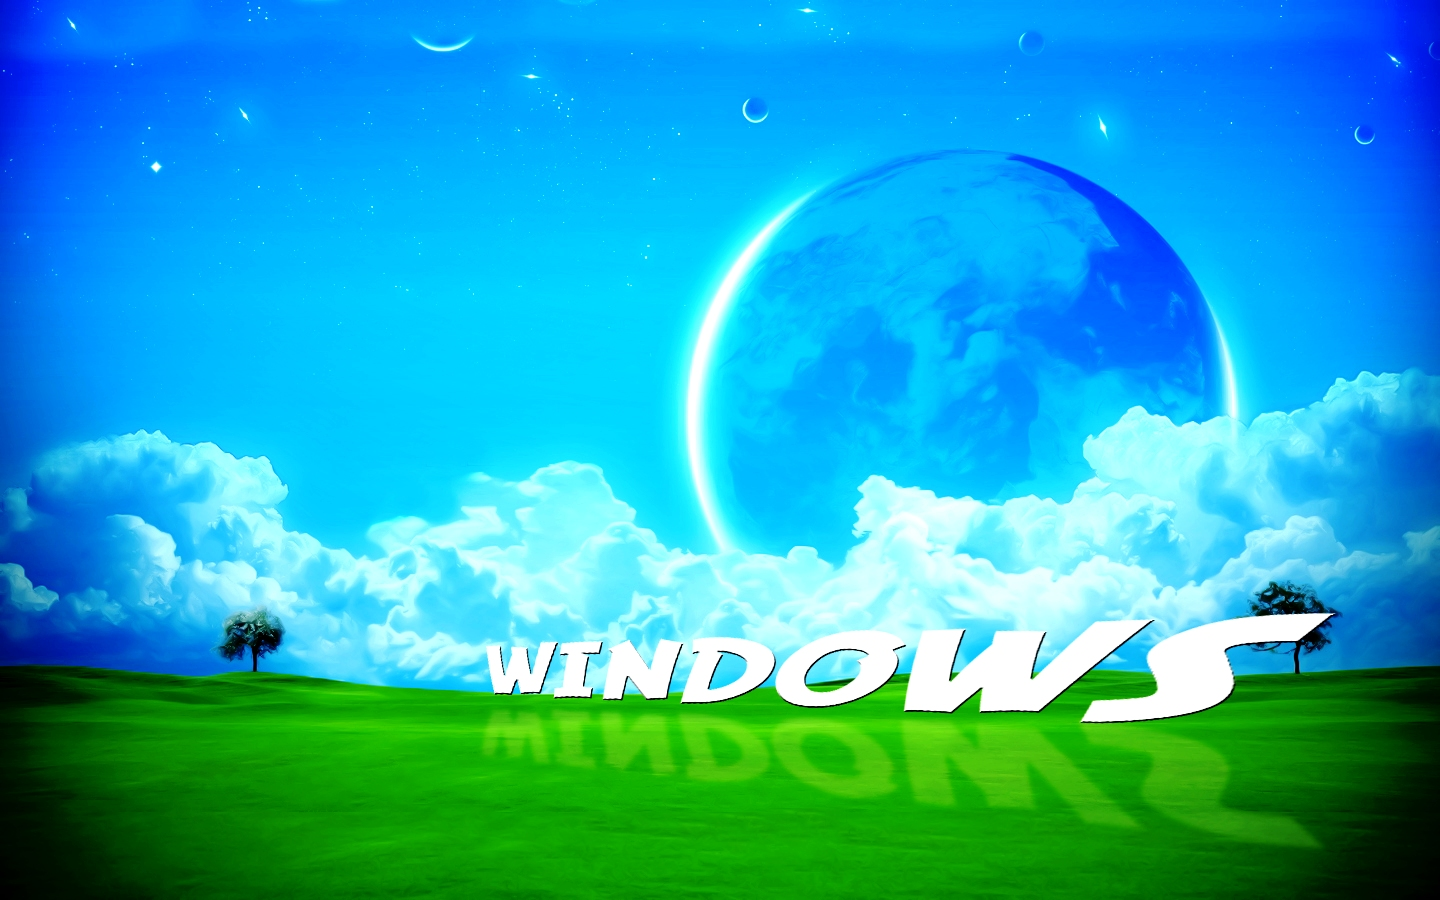 Animated Wallpaper Free Download